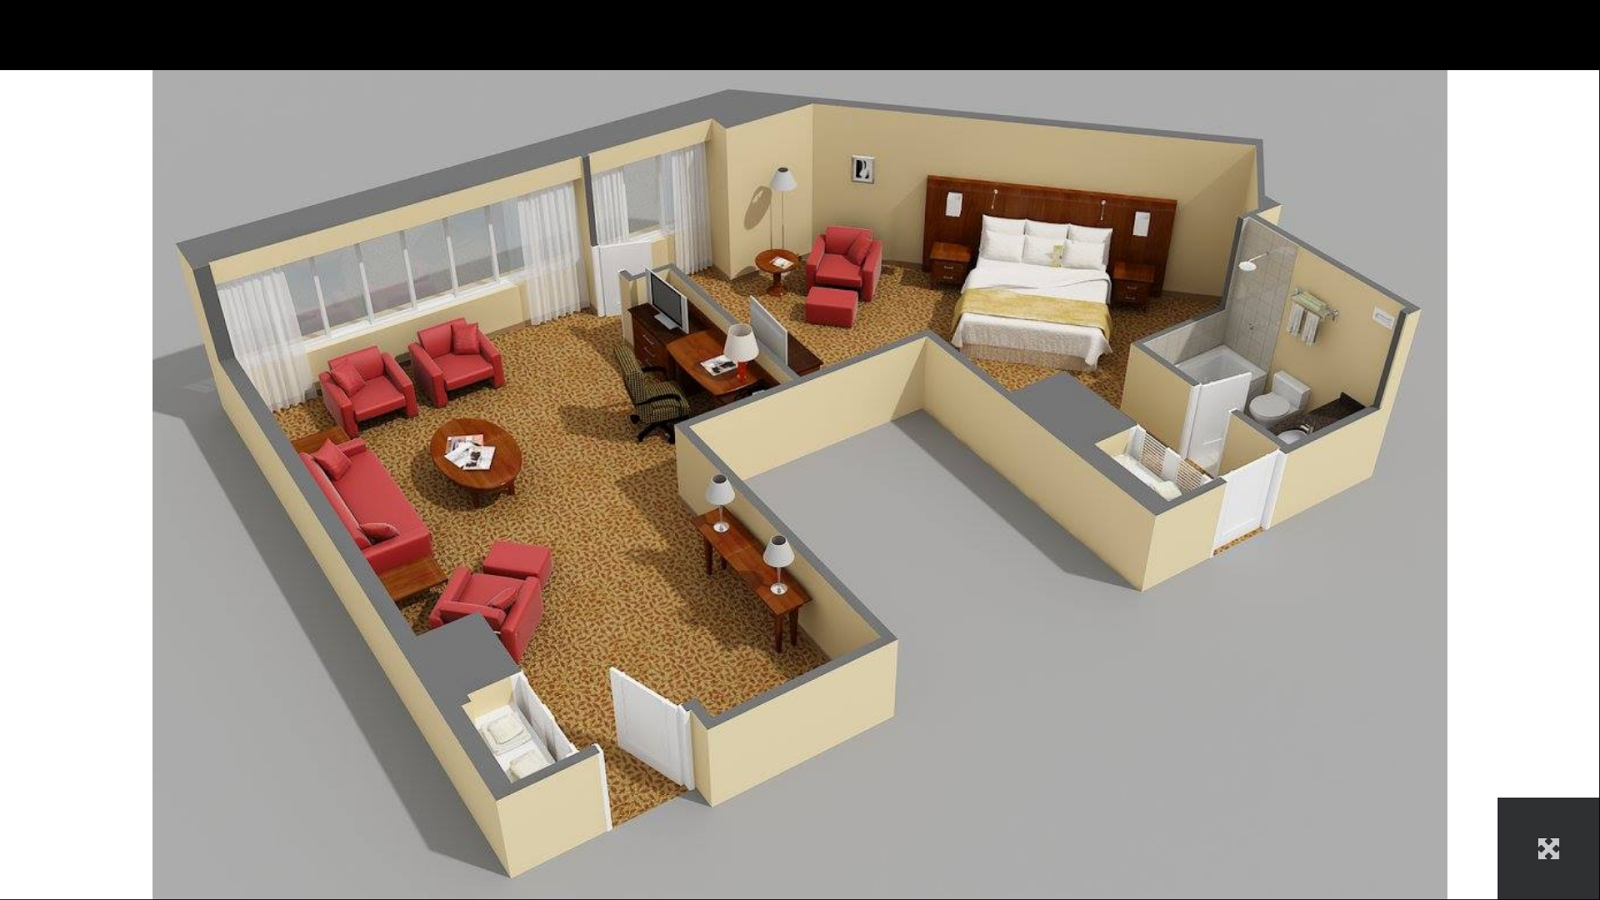 3d house plans android apps on google play 3d house plans screenshot malvernweather